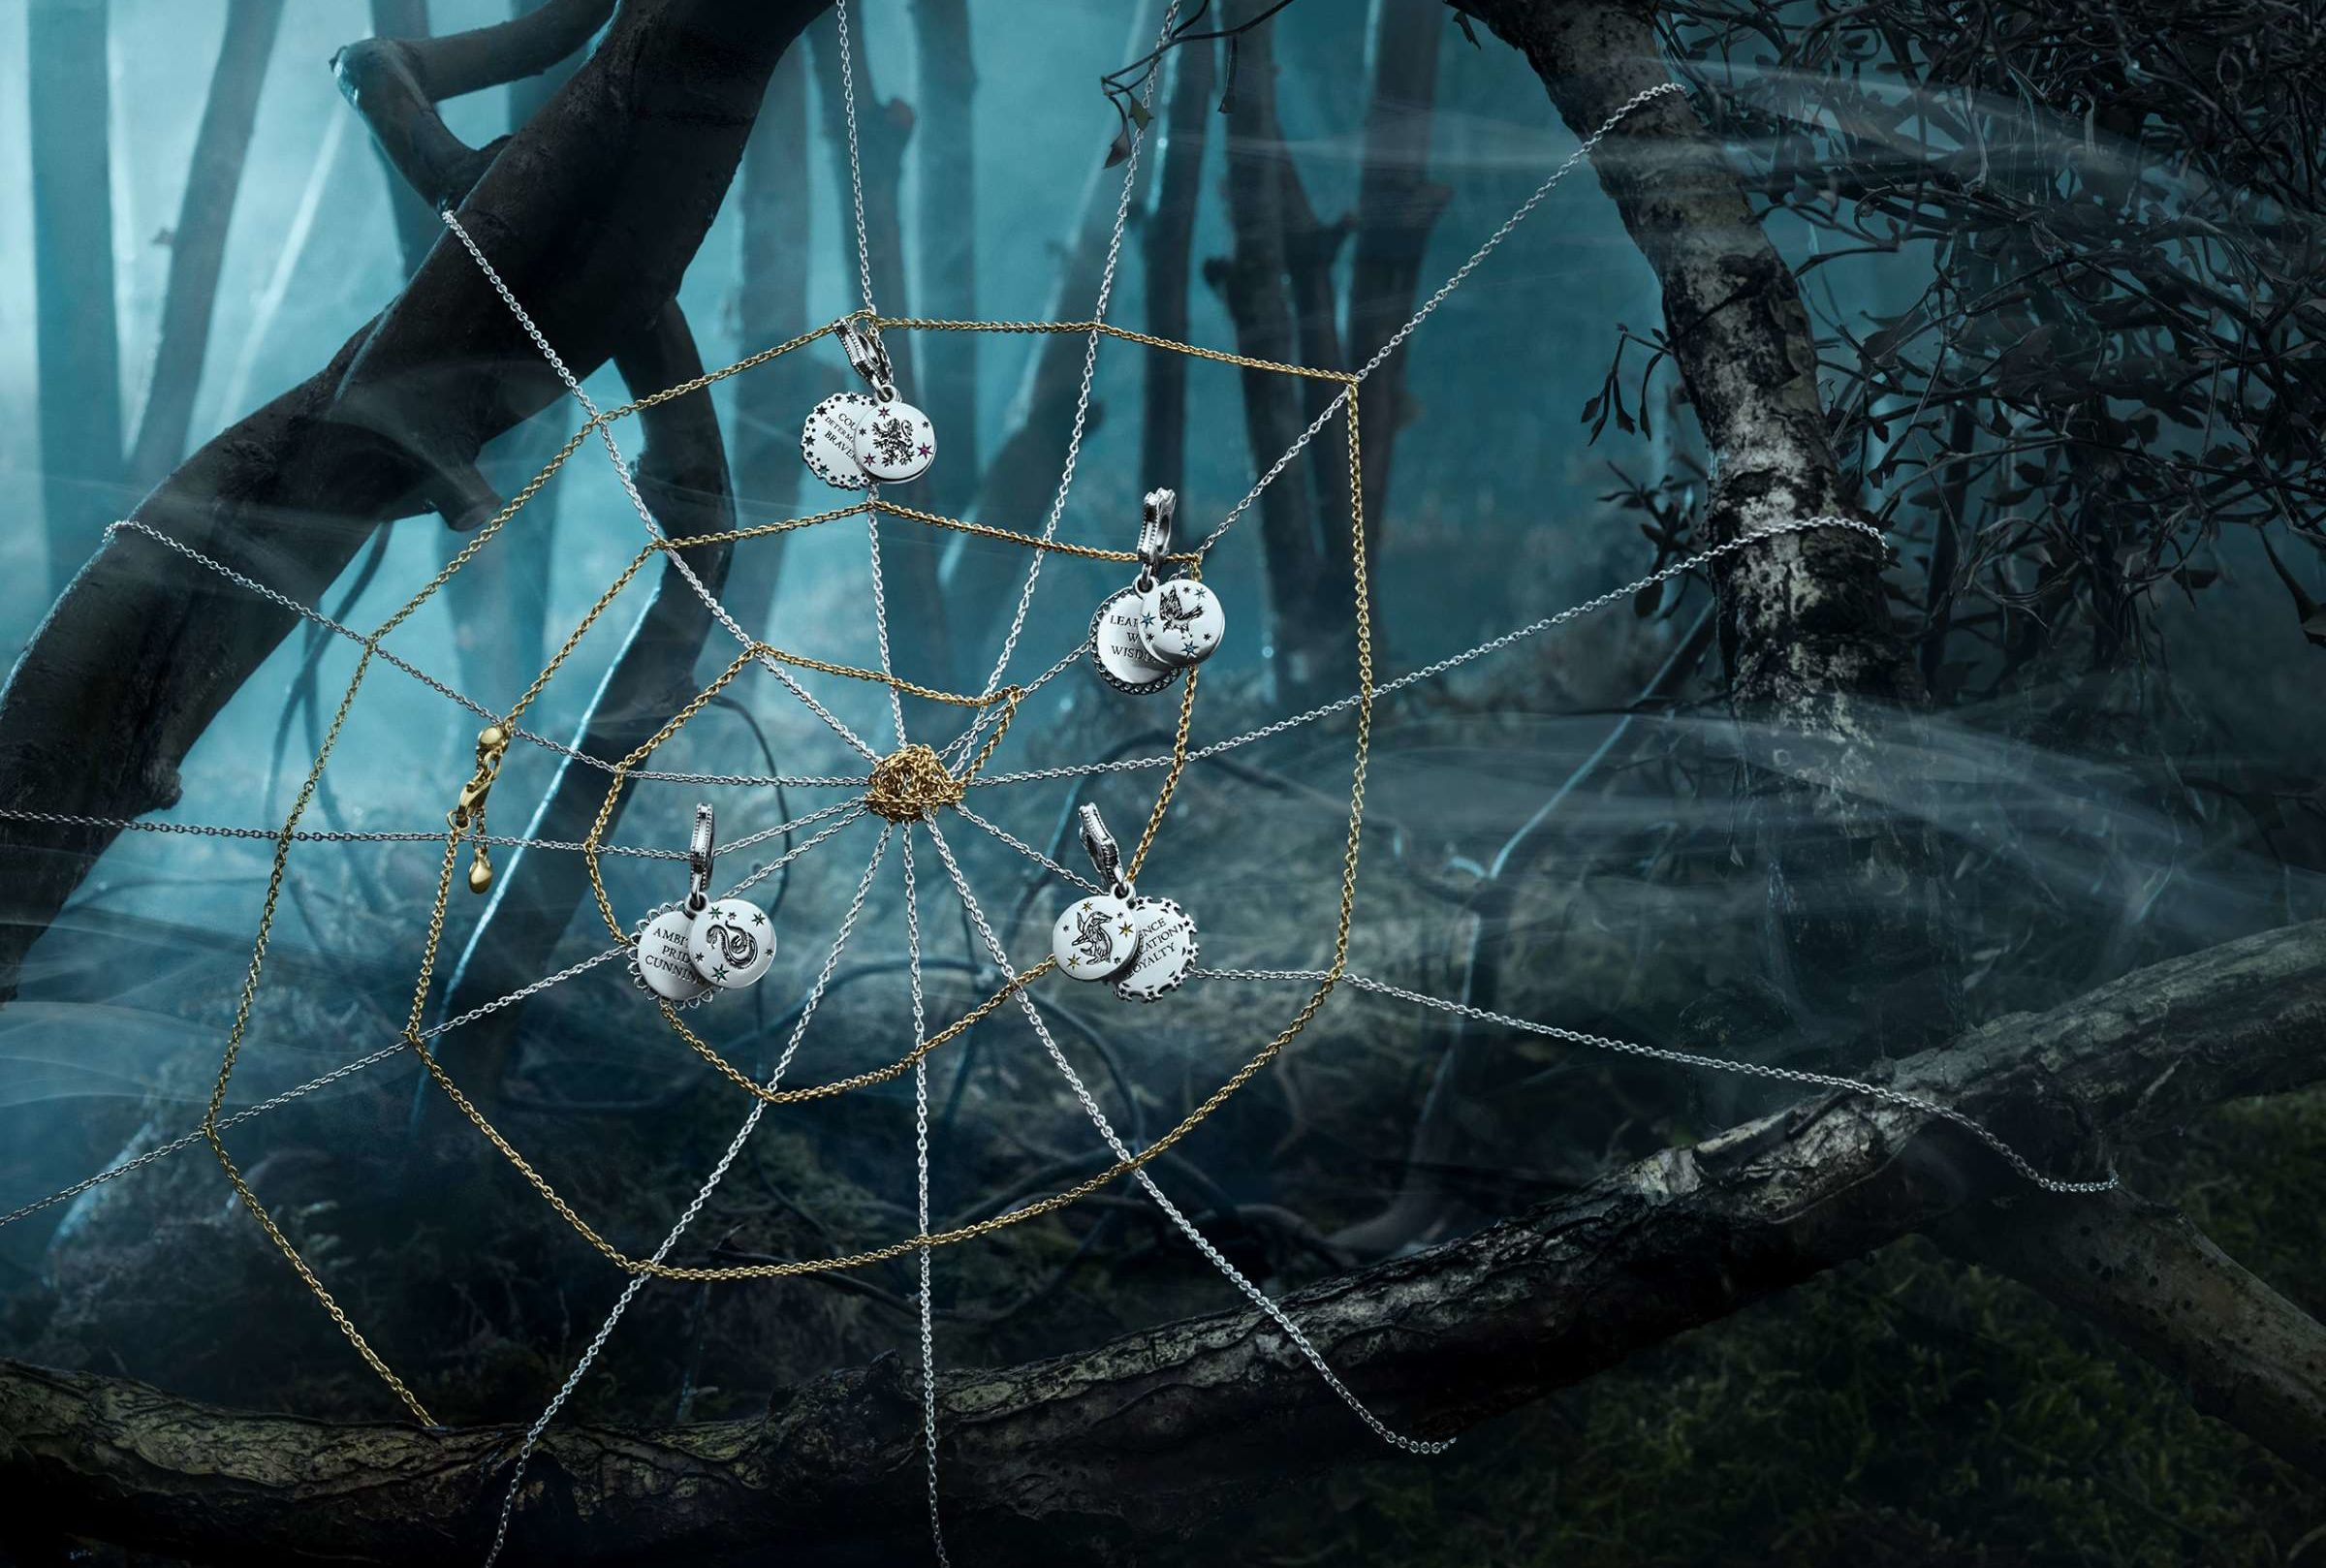 Pandora Released a Harry Potter-Inspired Jewelry Collection